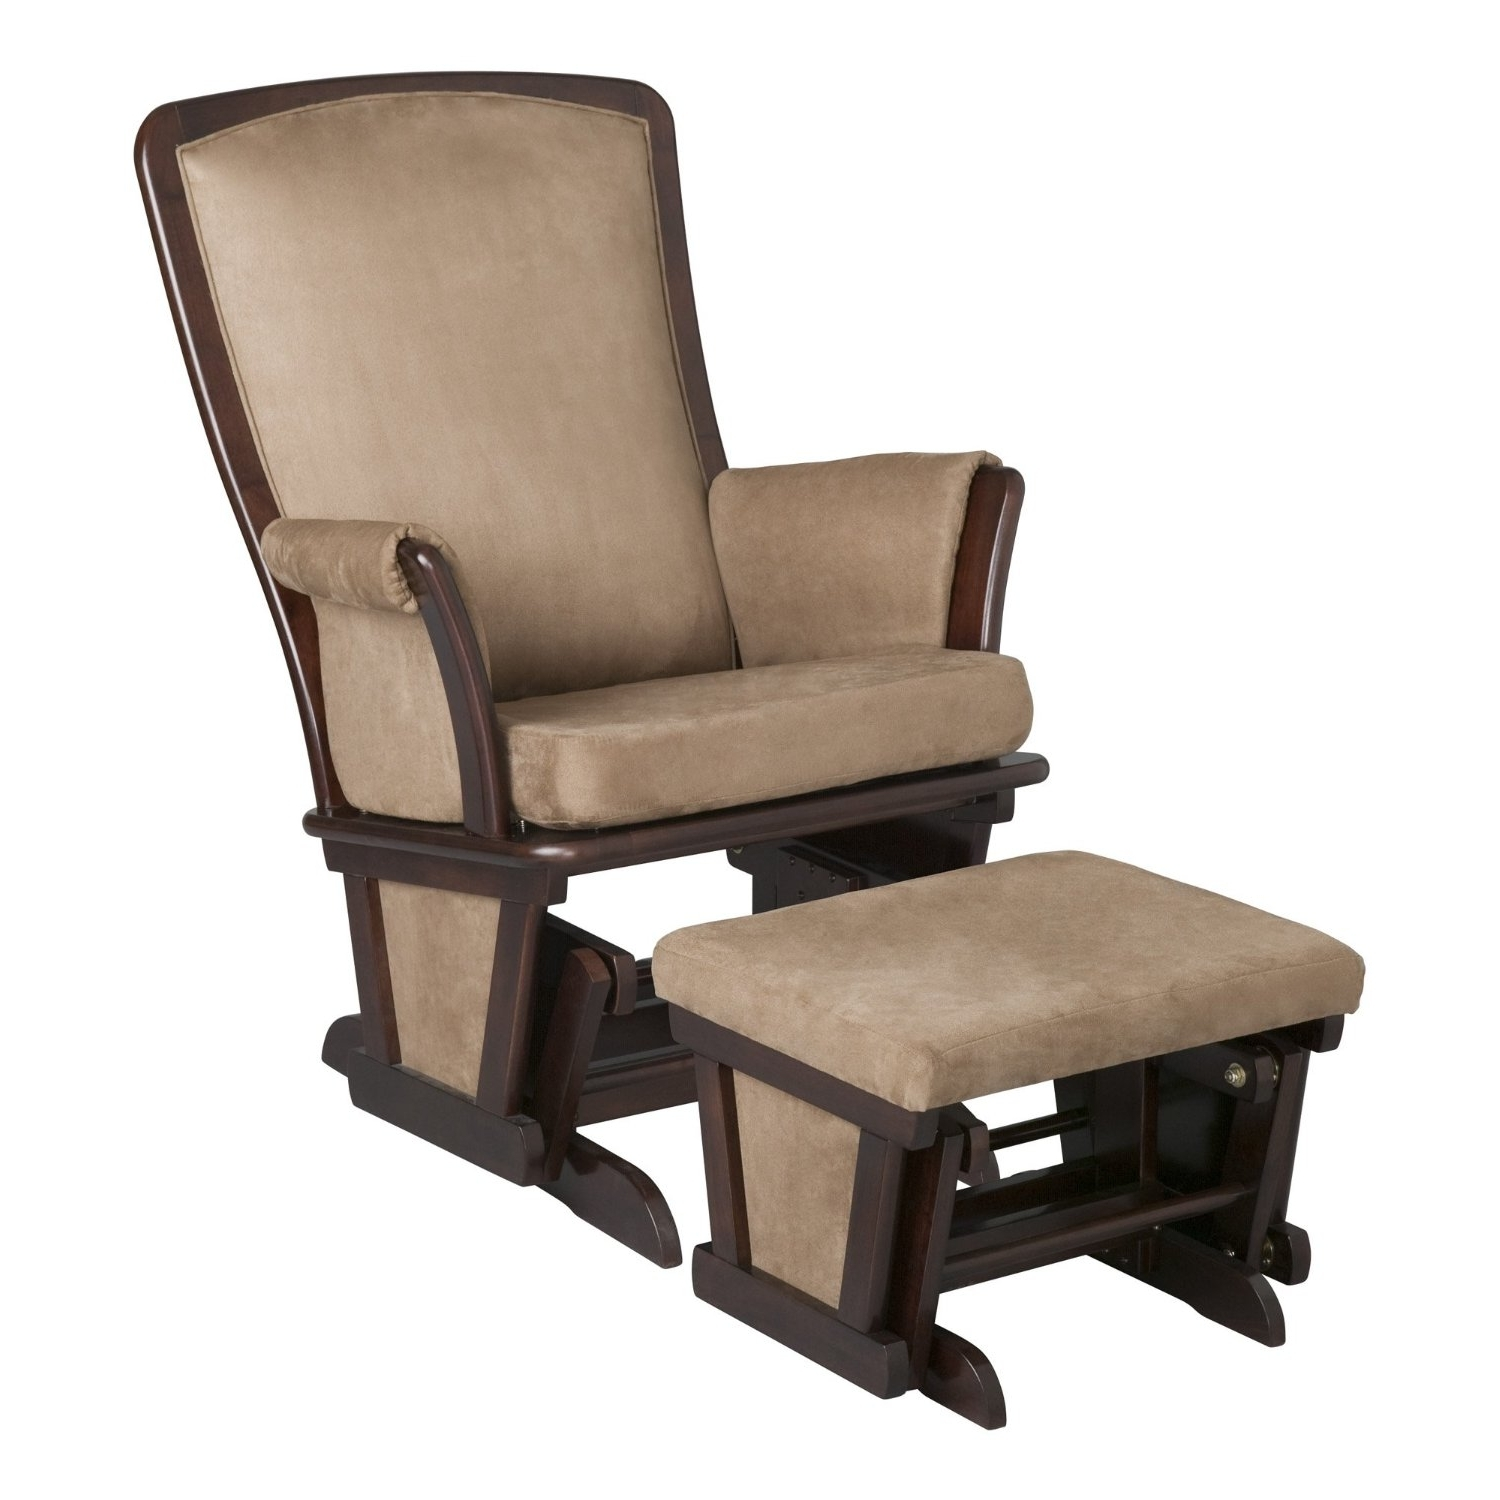 2018 Furniture: Best Rated Nursery Gliders,rocking Chairs Reviews 2015 With Rocking Chairs With Ottoman (View 2 of 20)